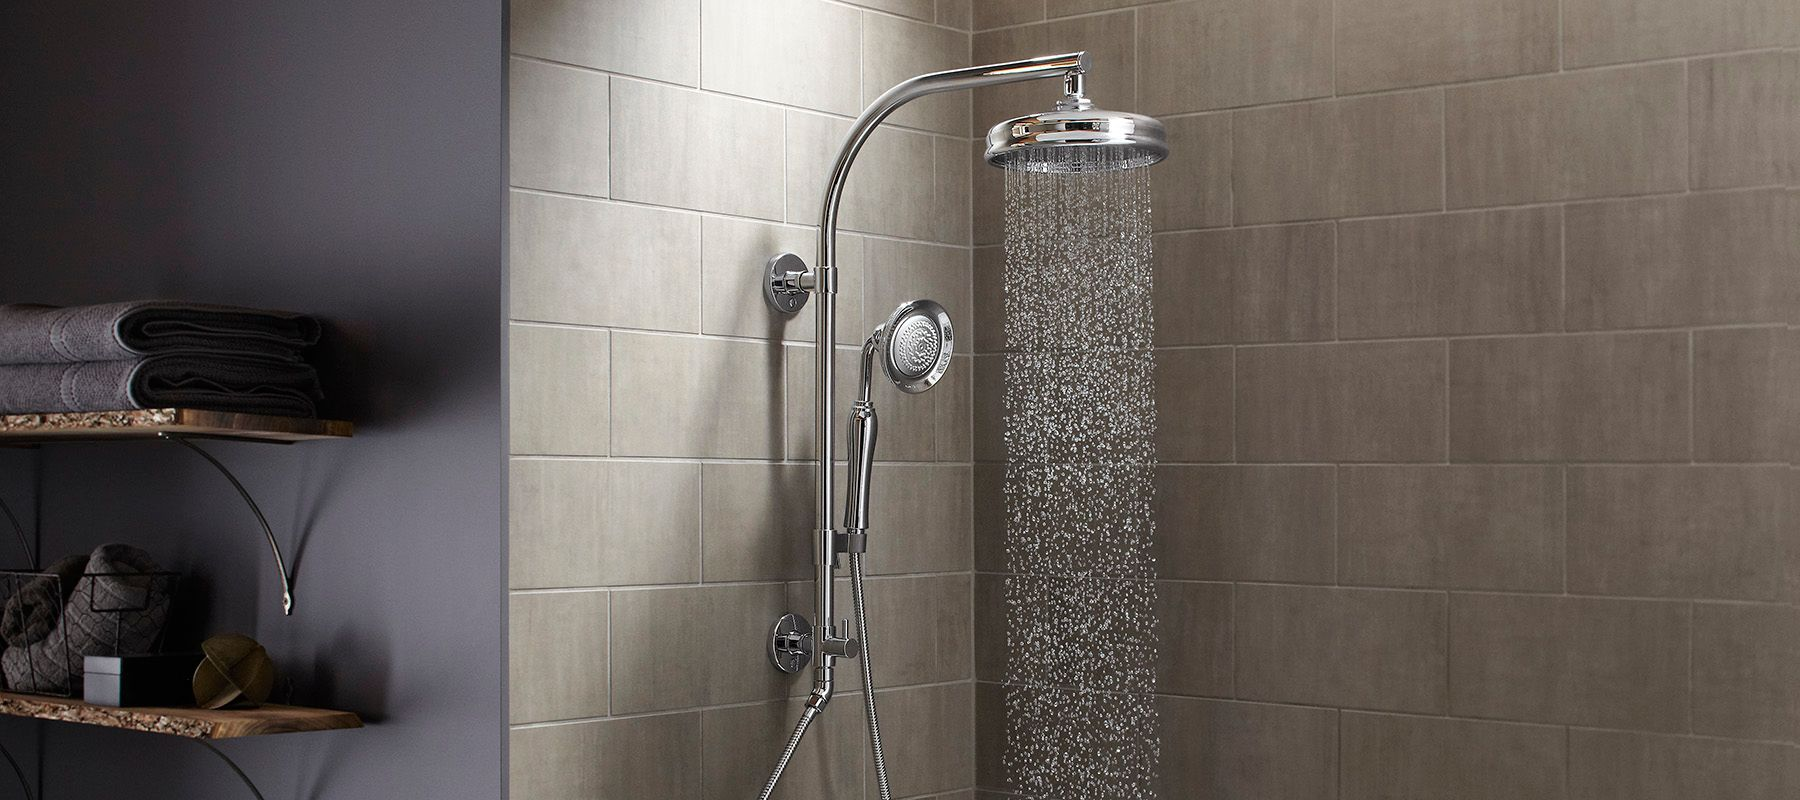 exira jets heads l body showerheads wall shower dual thermostatic bathroom rubbed sprayer oil systems system bronze hand